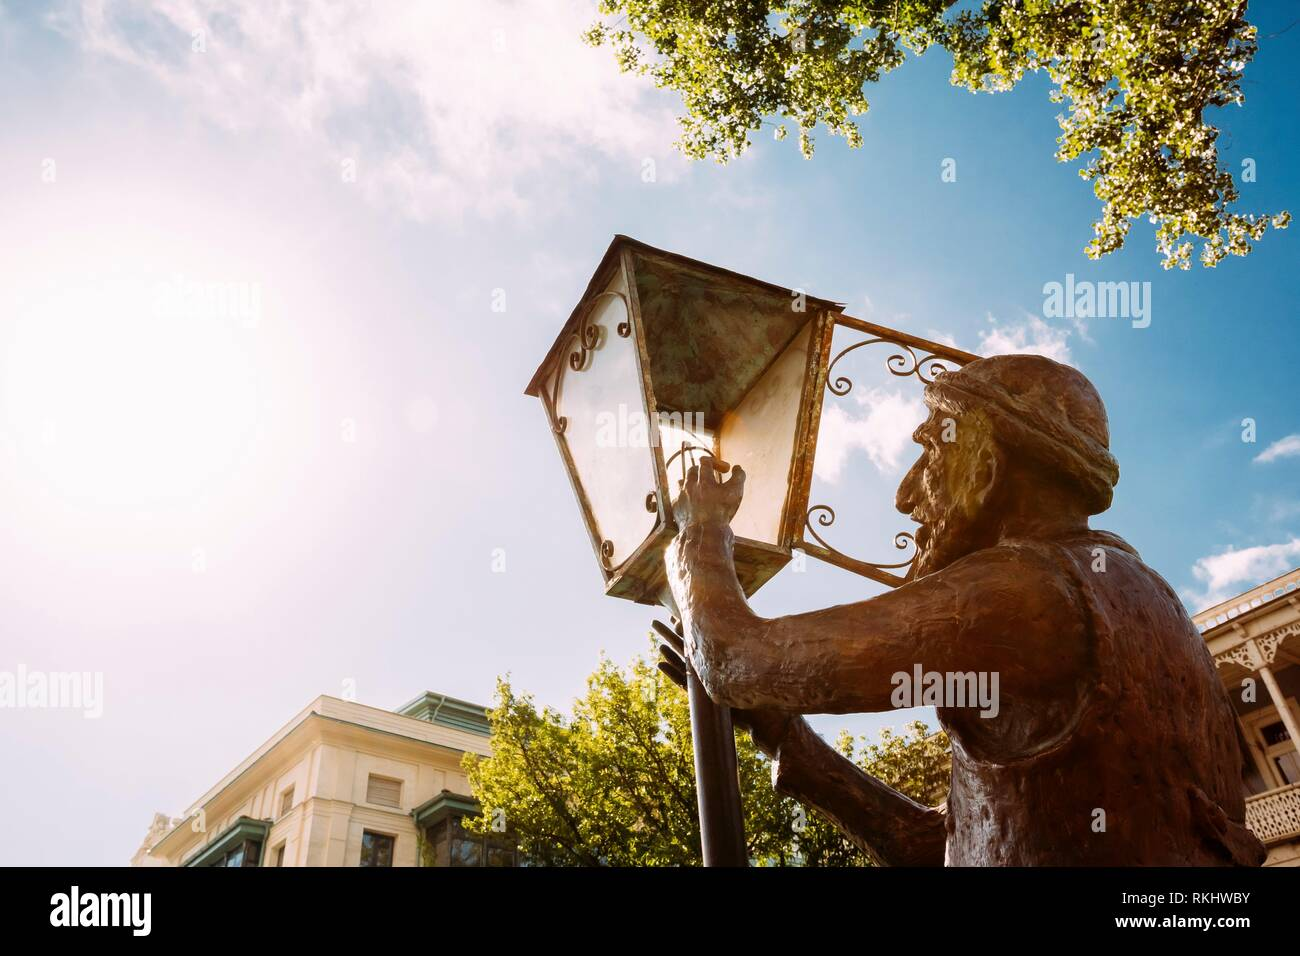 Statue Of Old Lamplighter, Igniting Lights On Streets Of Tbilisi - The Capital Of Georgia. - Stock Image